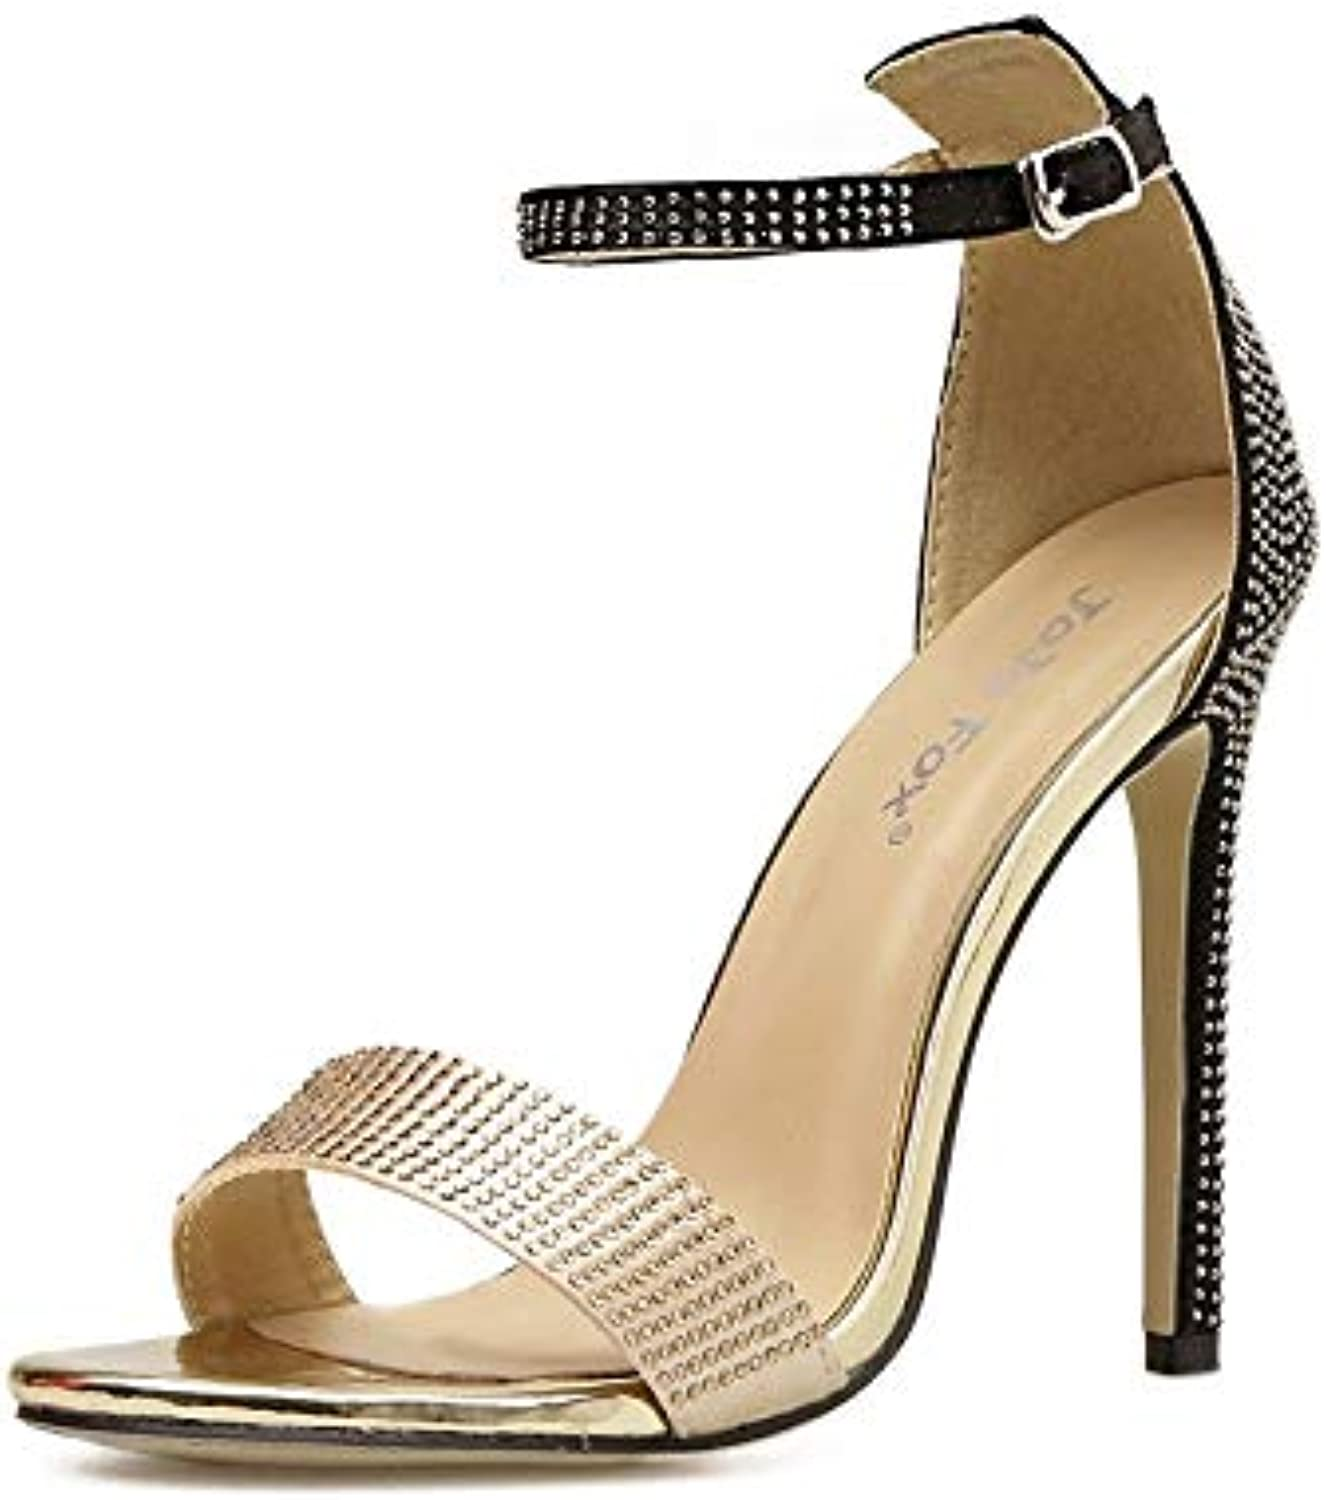 KCatsy Women's Stiletto High Heels Sexy Party Sandals with Rhinestone